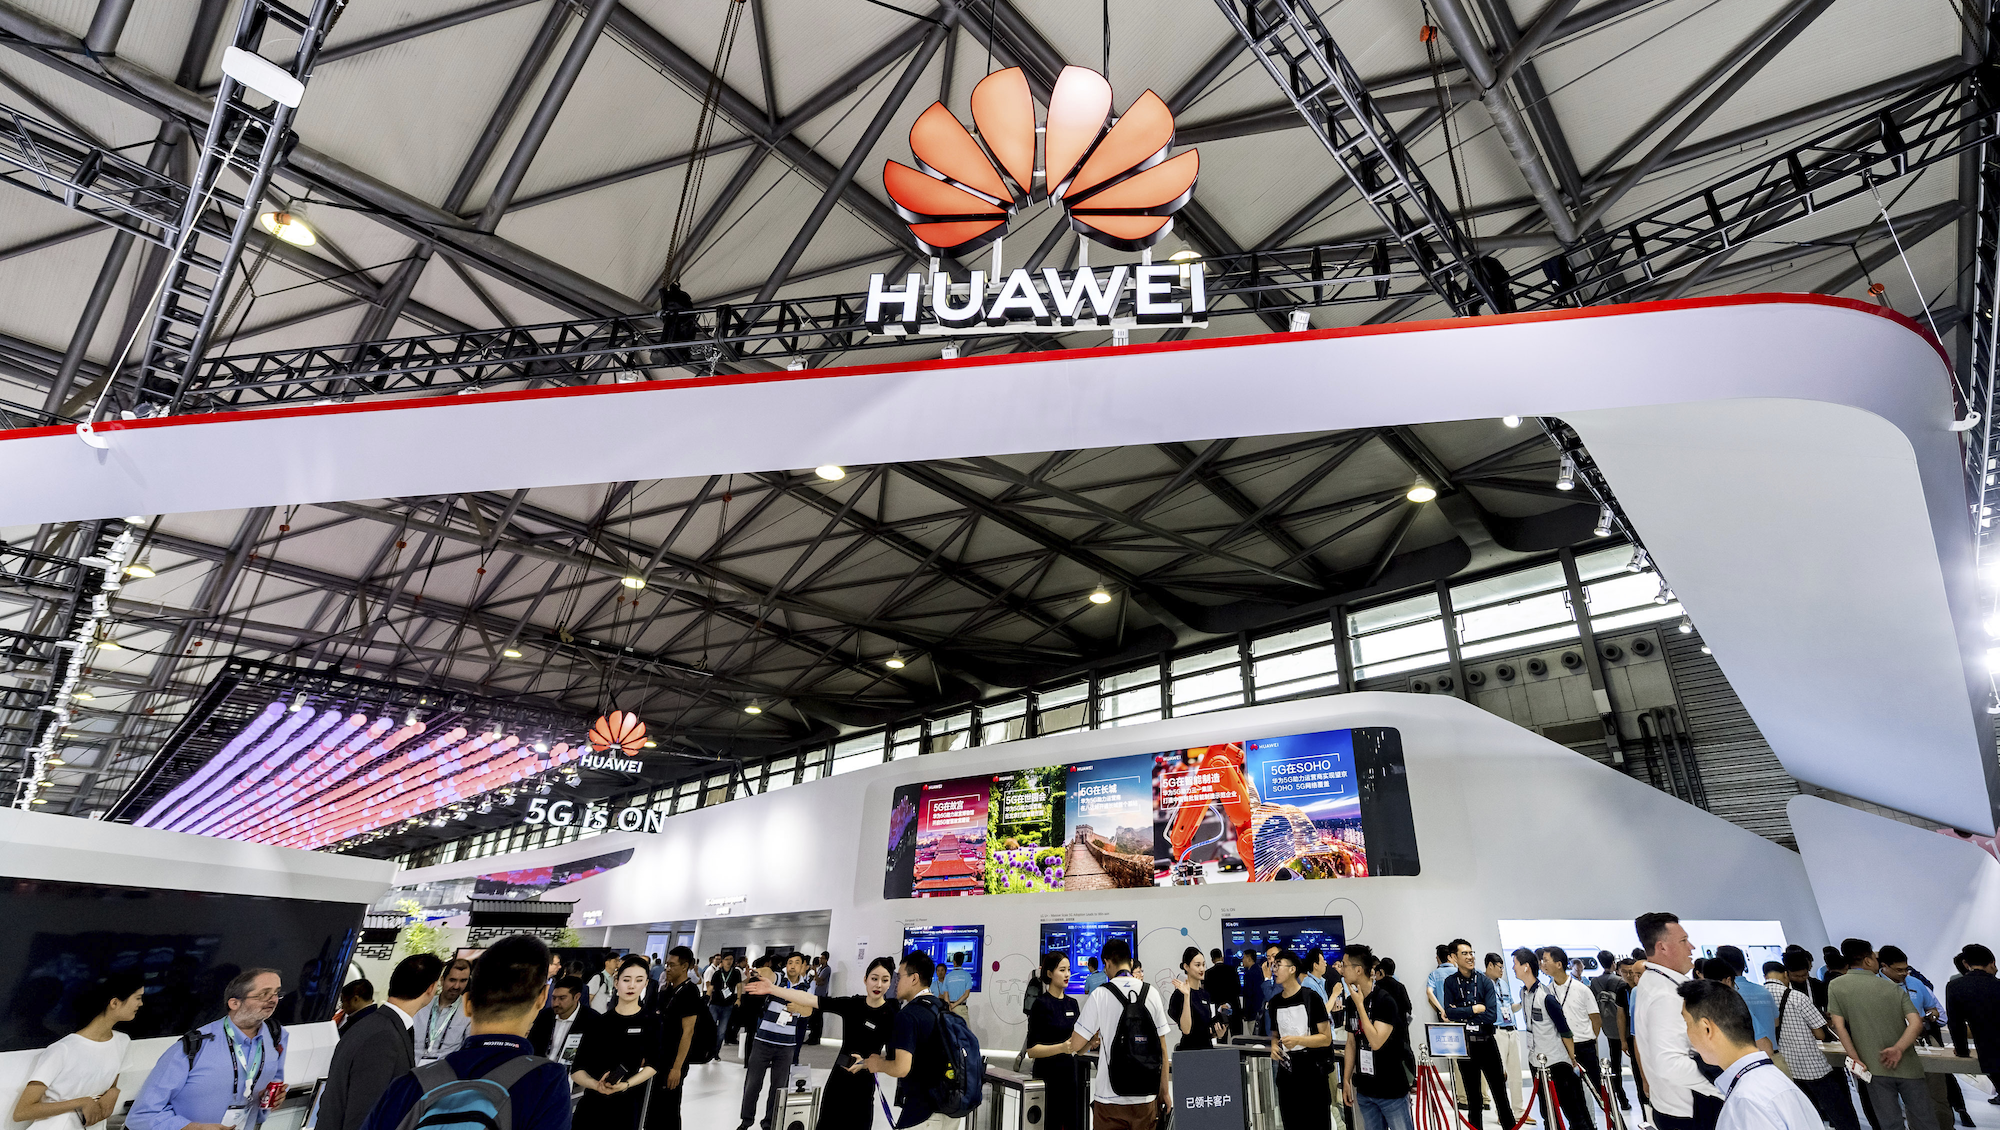 Huawei is giving $300 million a year to universities with no strings attached